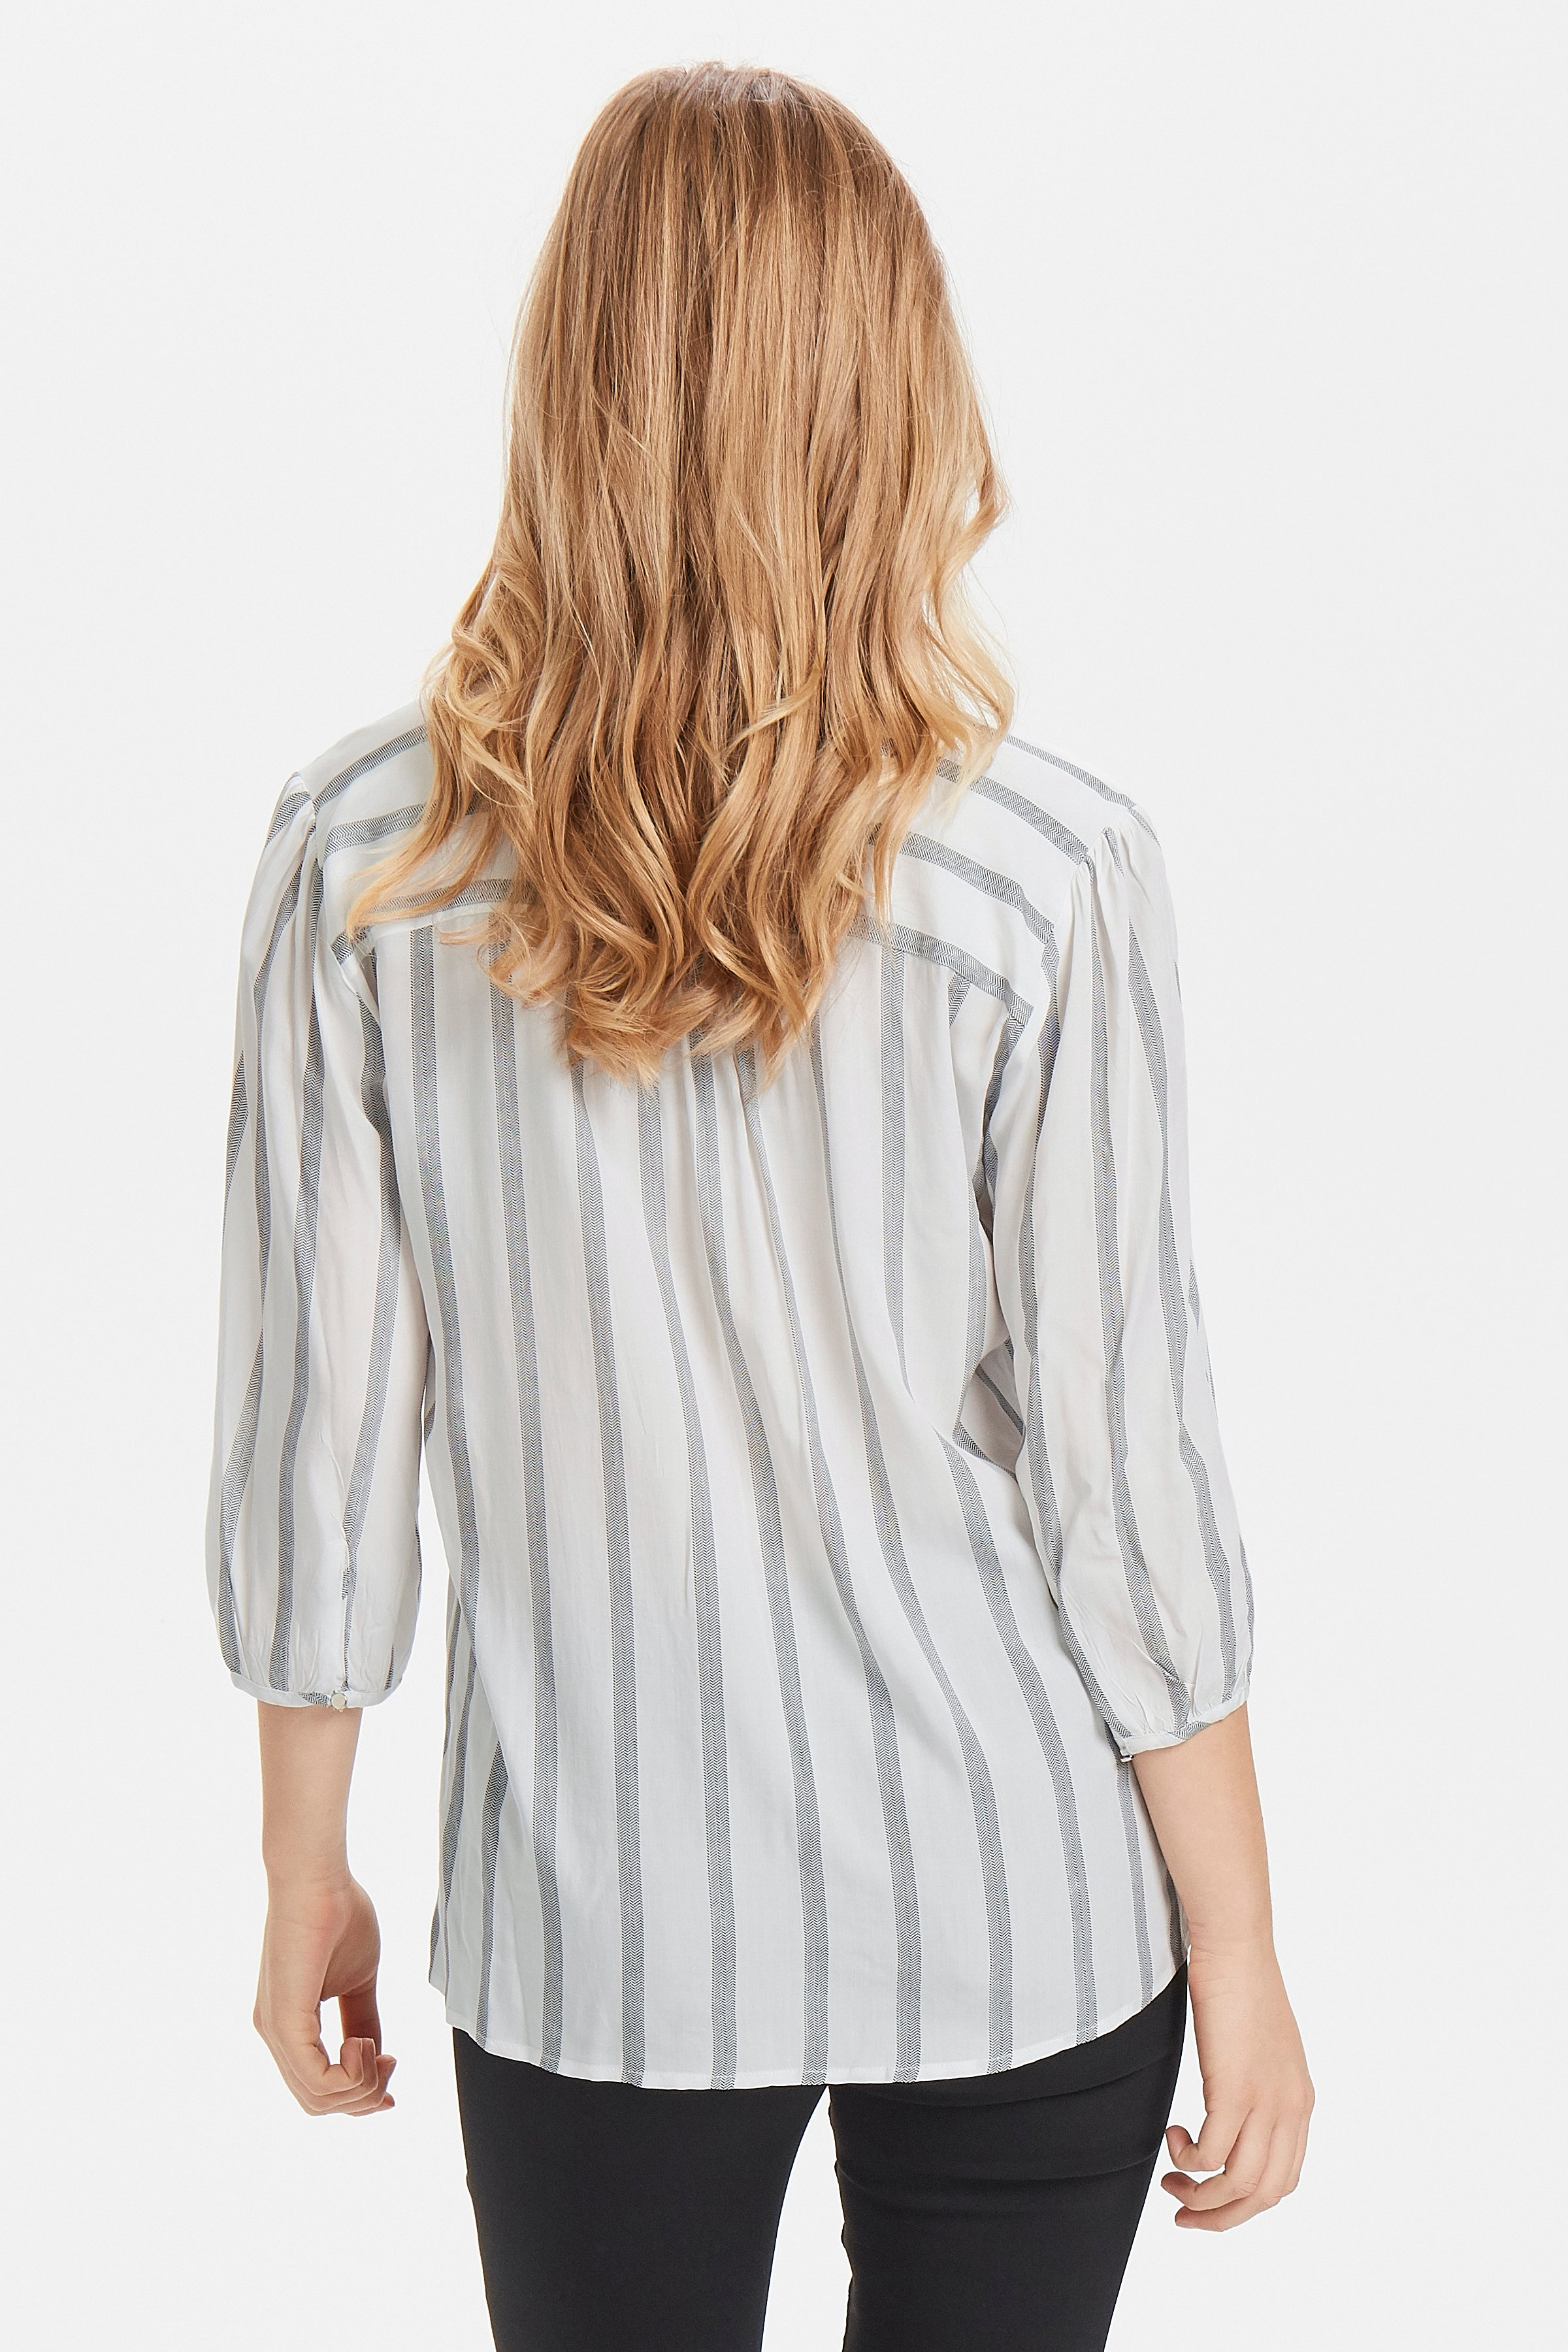 Off White Long sleeved shirt from b.young – Buy Off White Long sleeved shirt from size 34-42 here